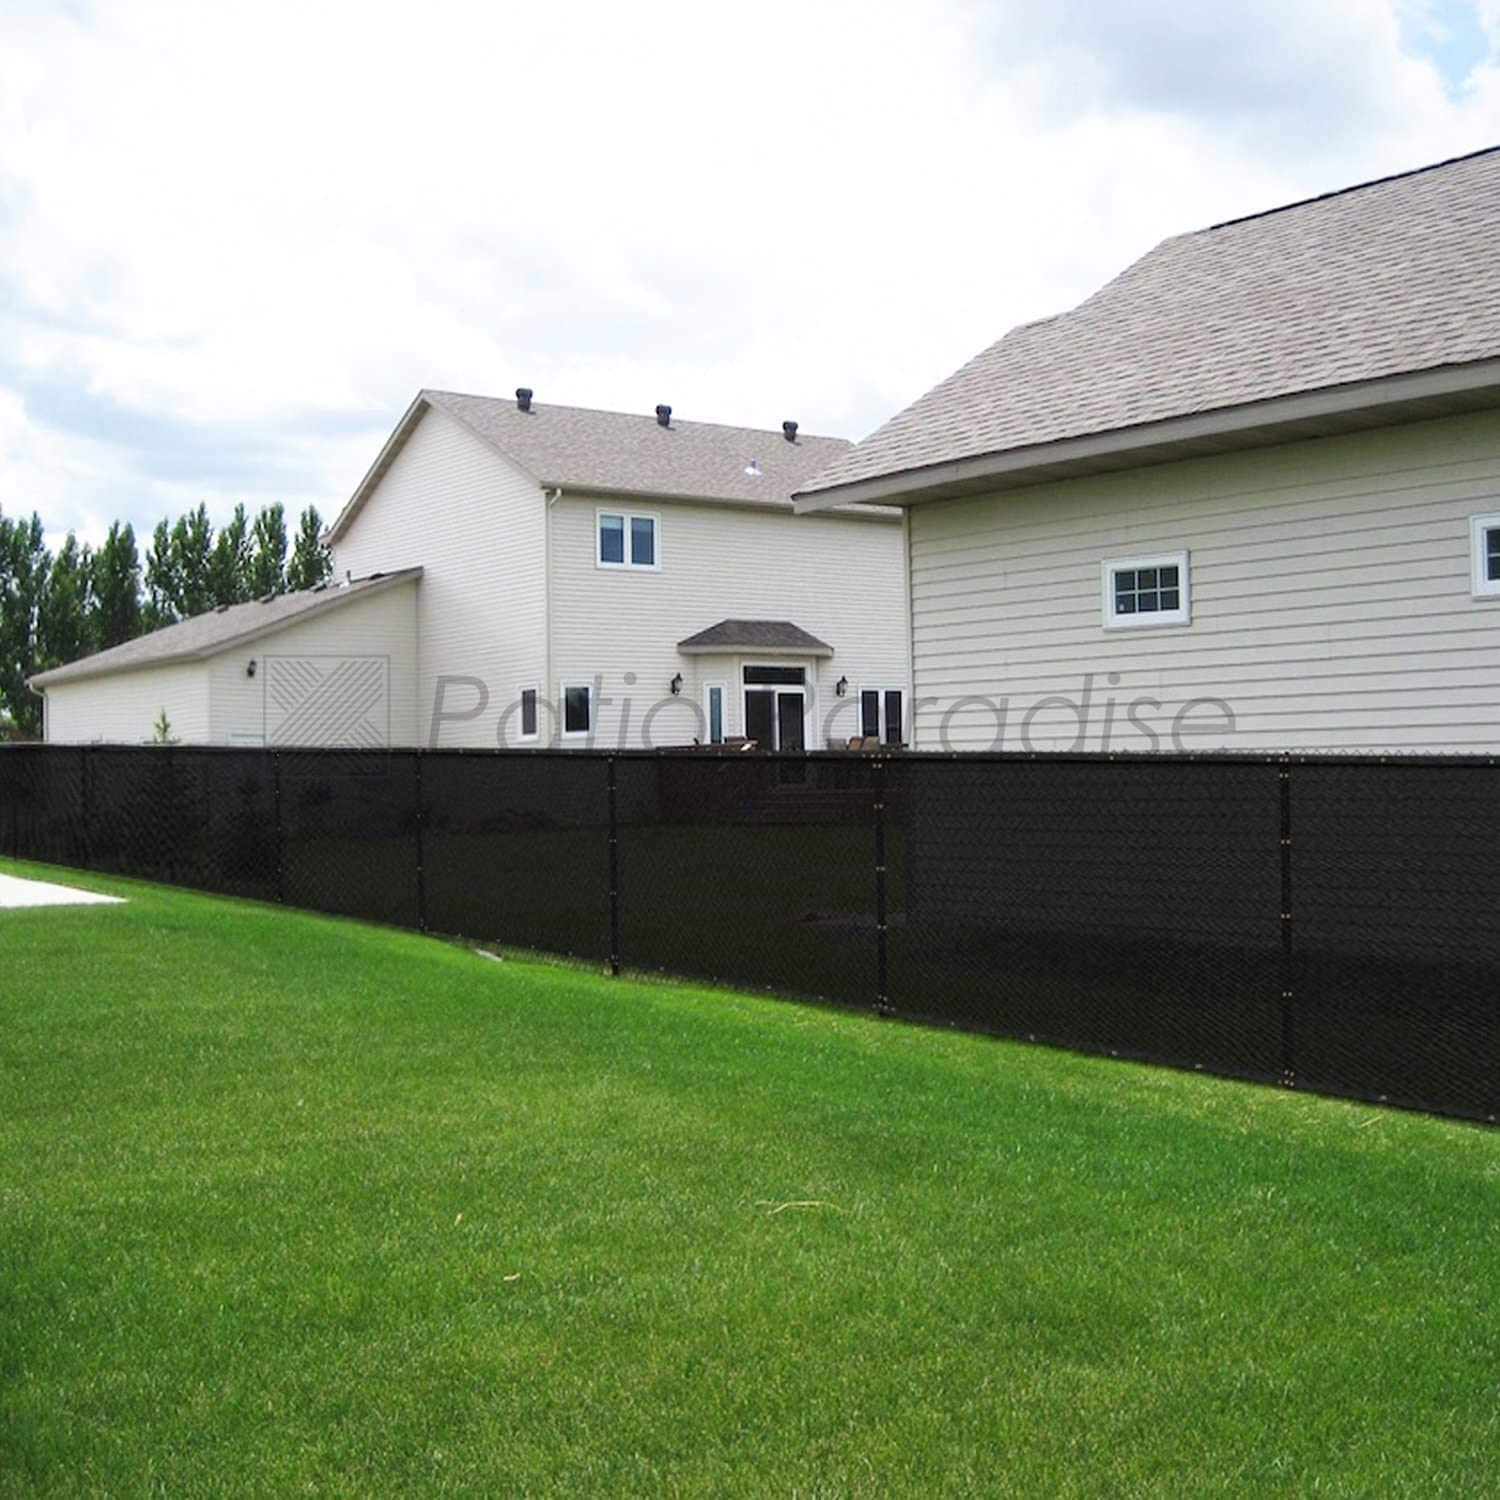 Custom Patio Paradise 4 x 5 Privacy Screen Fence in Black Commercial Grand Mesh Shade Fabric with Brass Gromment Outdoor Windscren